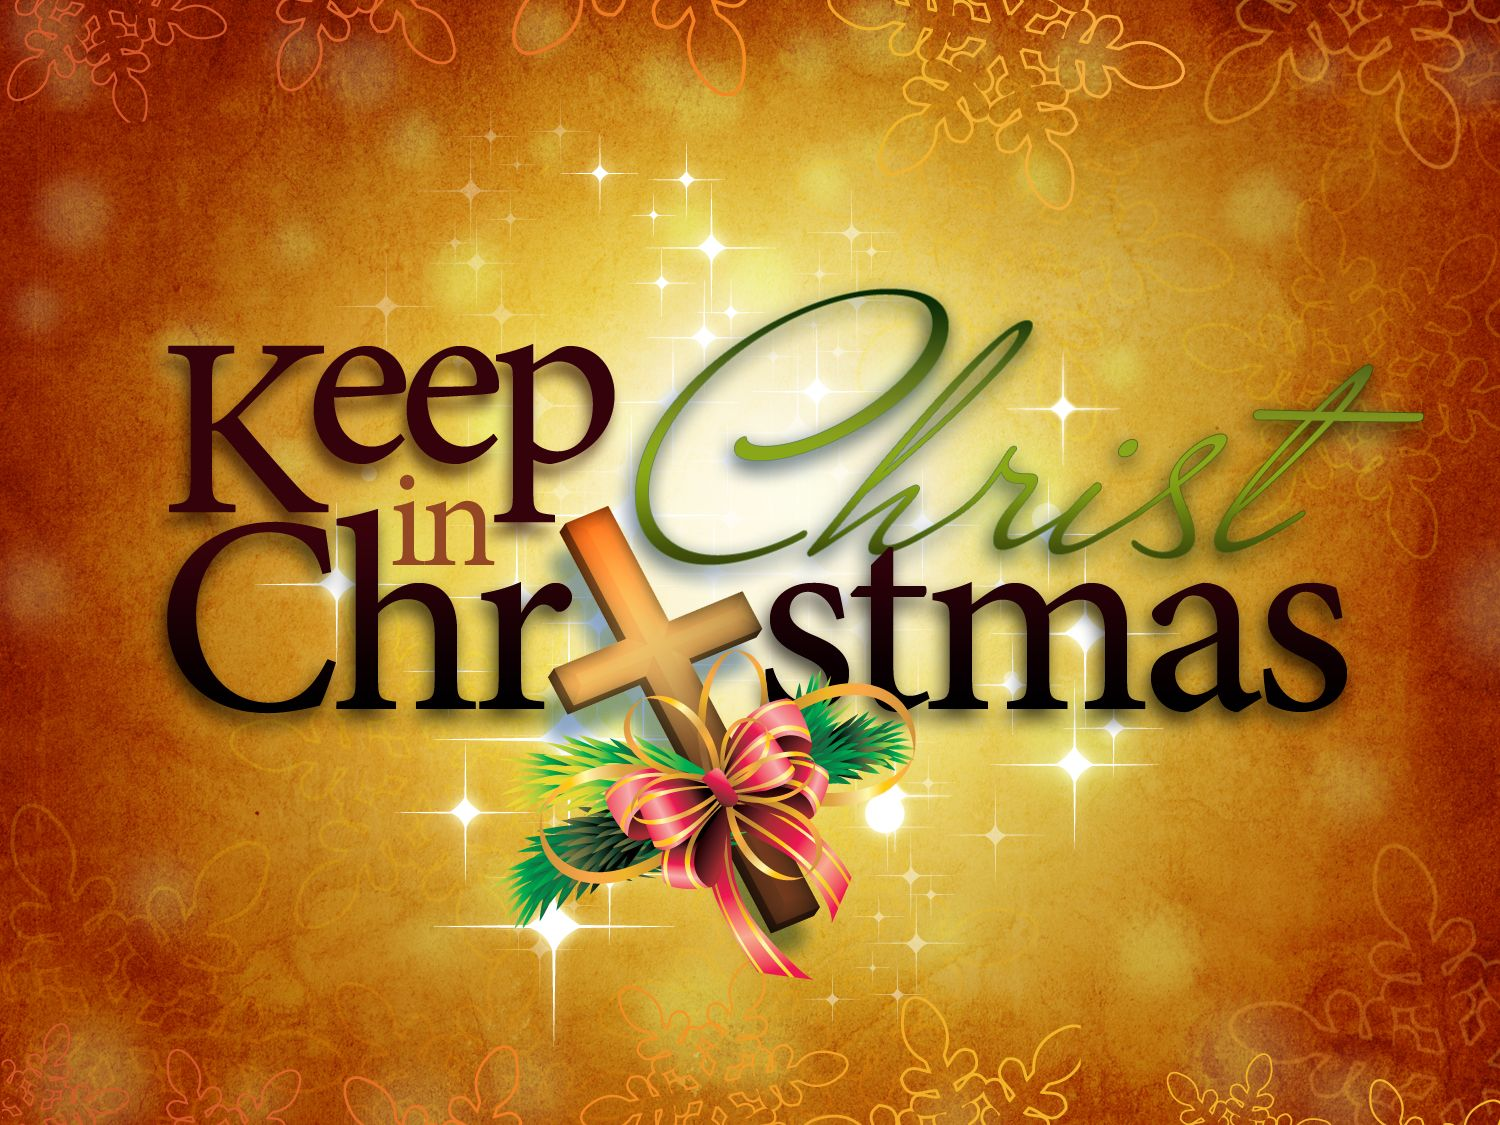 Seven ideas for keeping christ central at christmas sunday explore christmas cards and more kristyandbryce Images